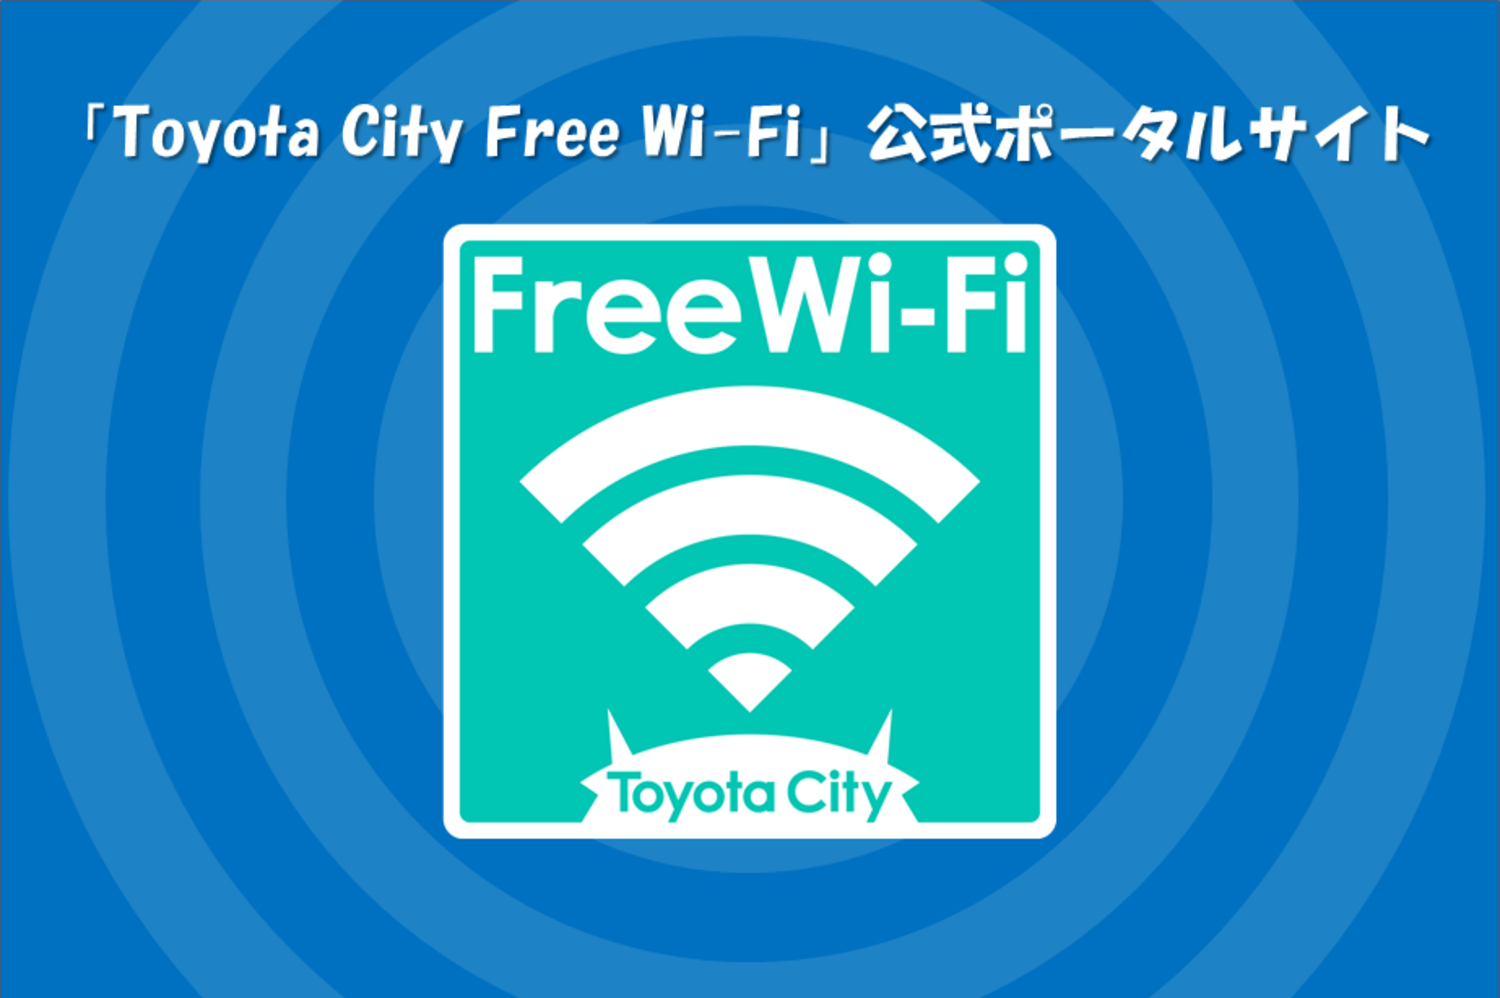 You can see search of Wi-Fi spot around the present location and sightseeing information of Toyota-shi!